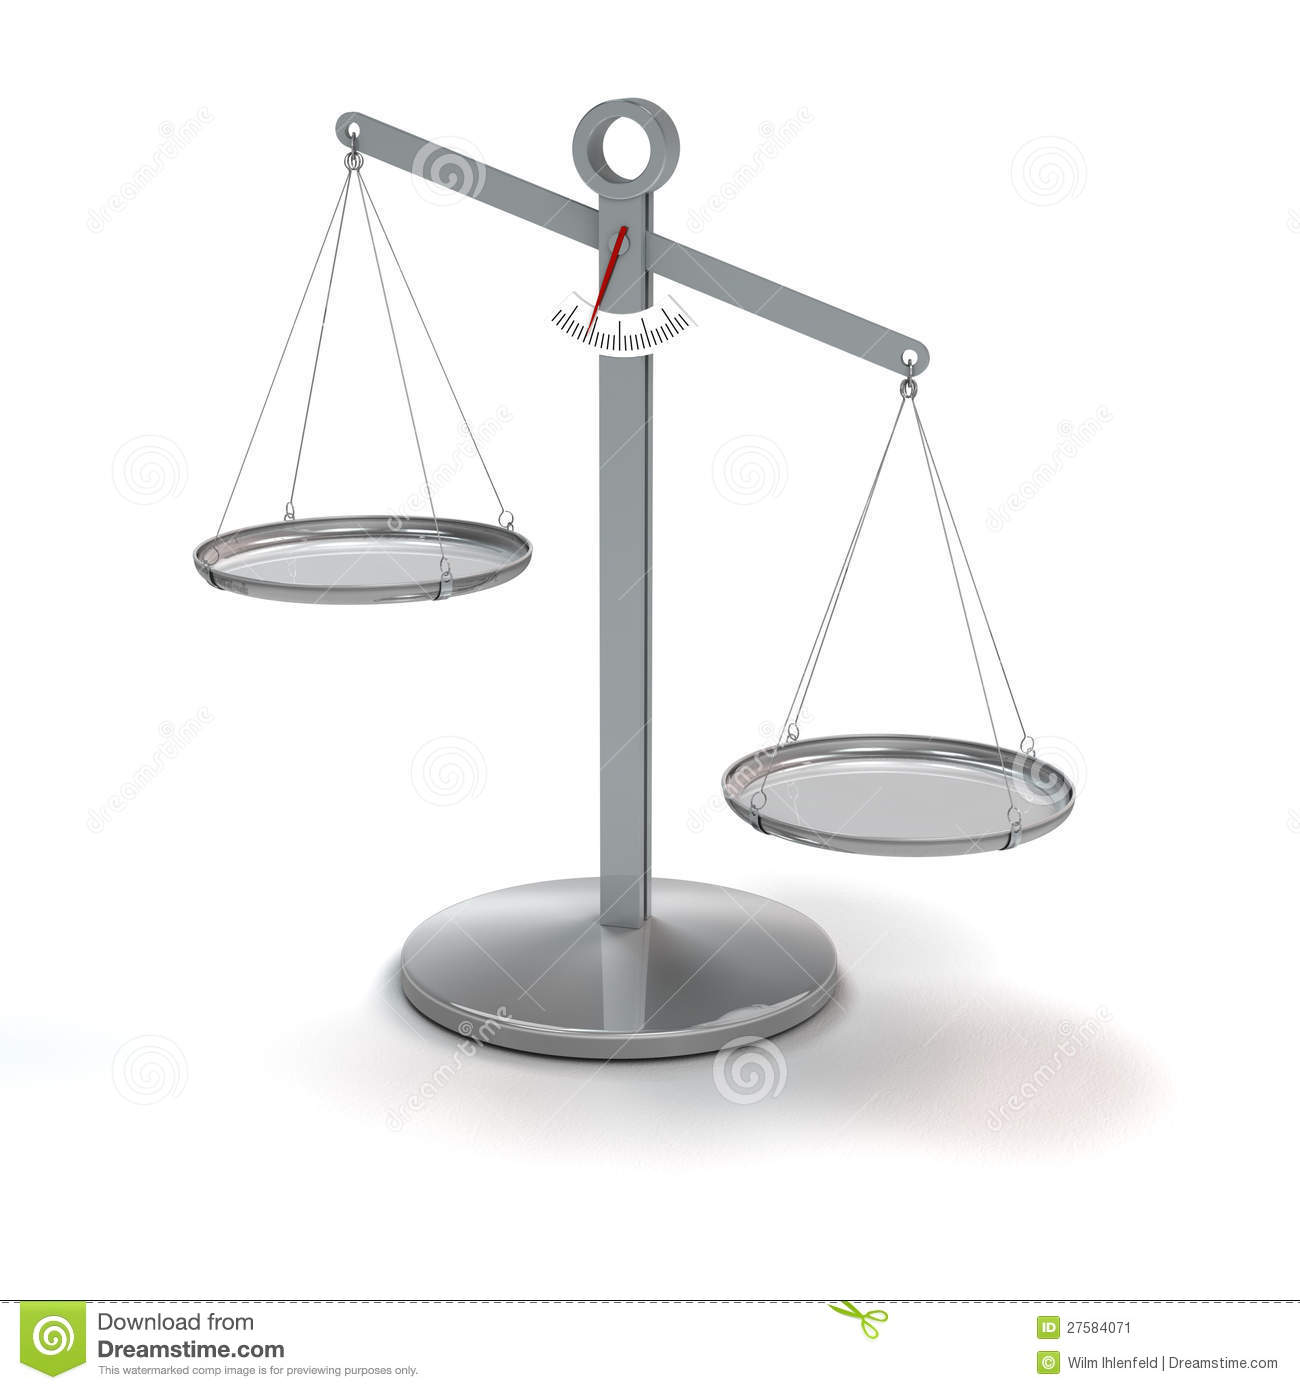 Scales of justice stoc...